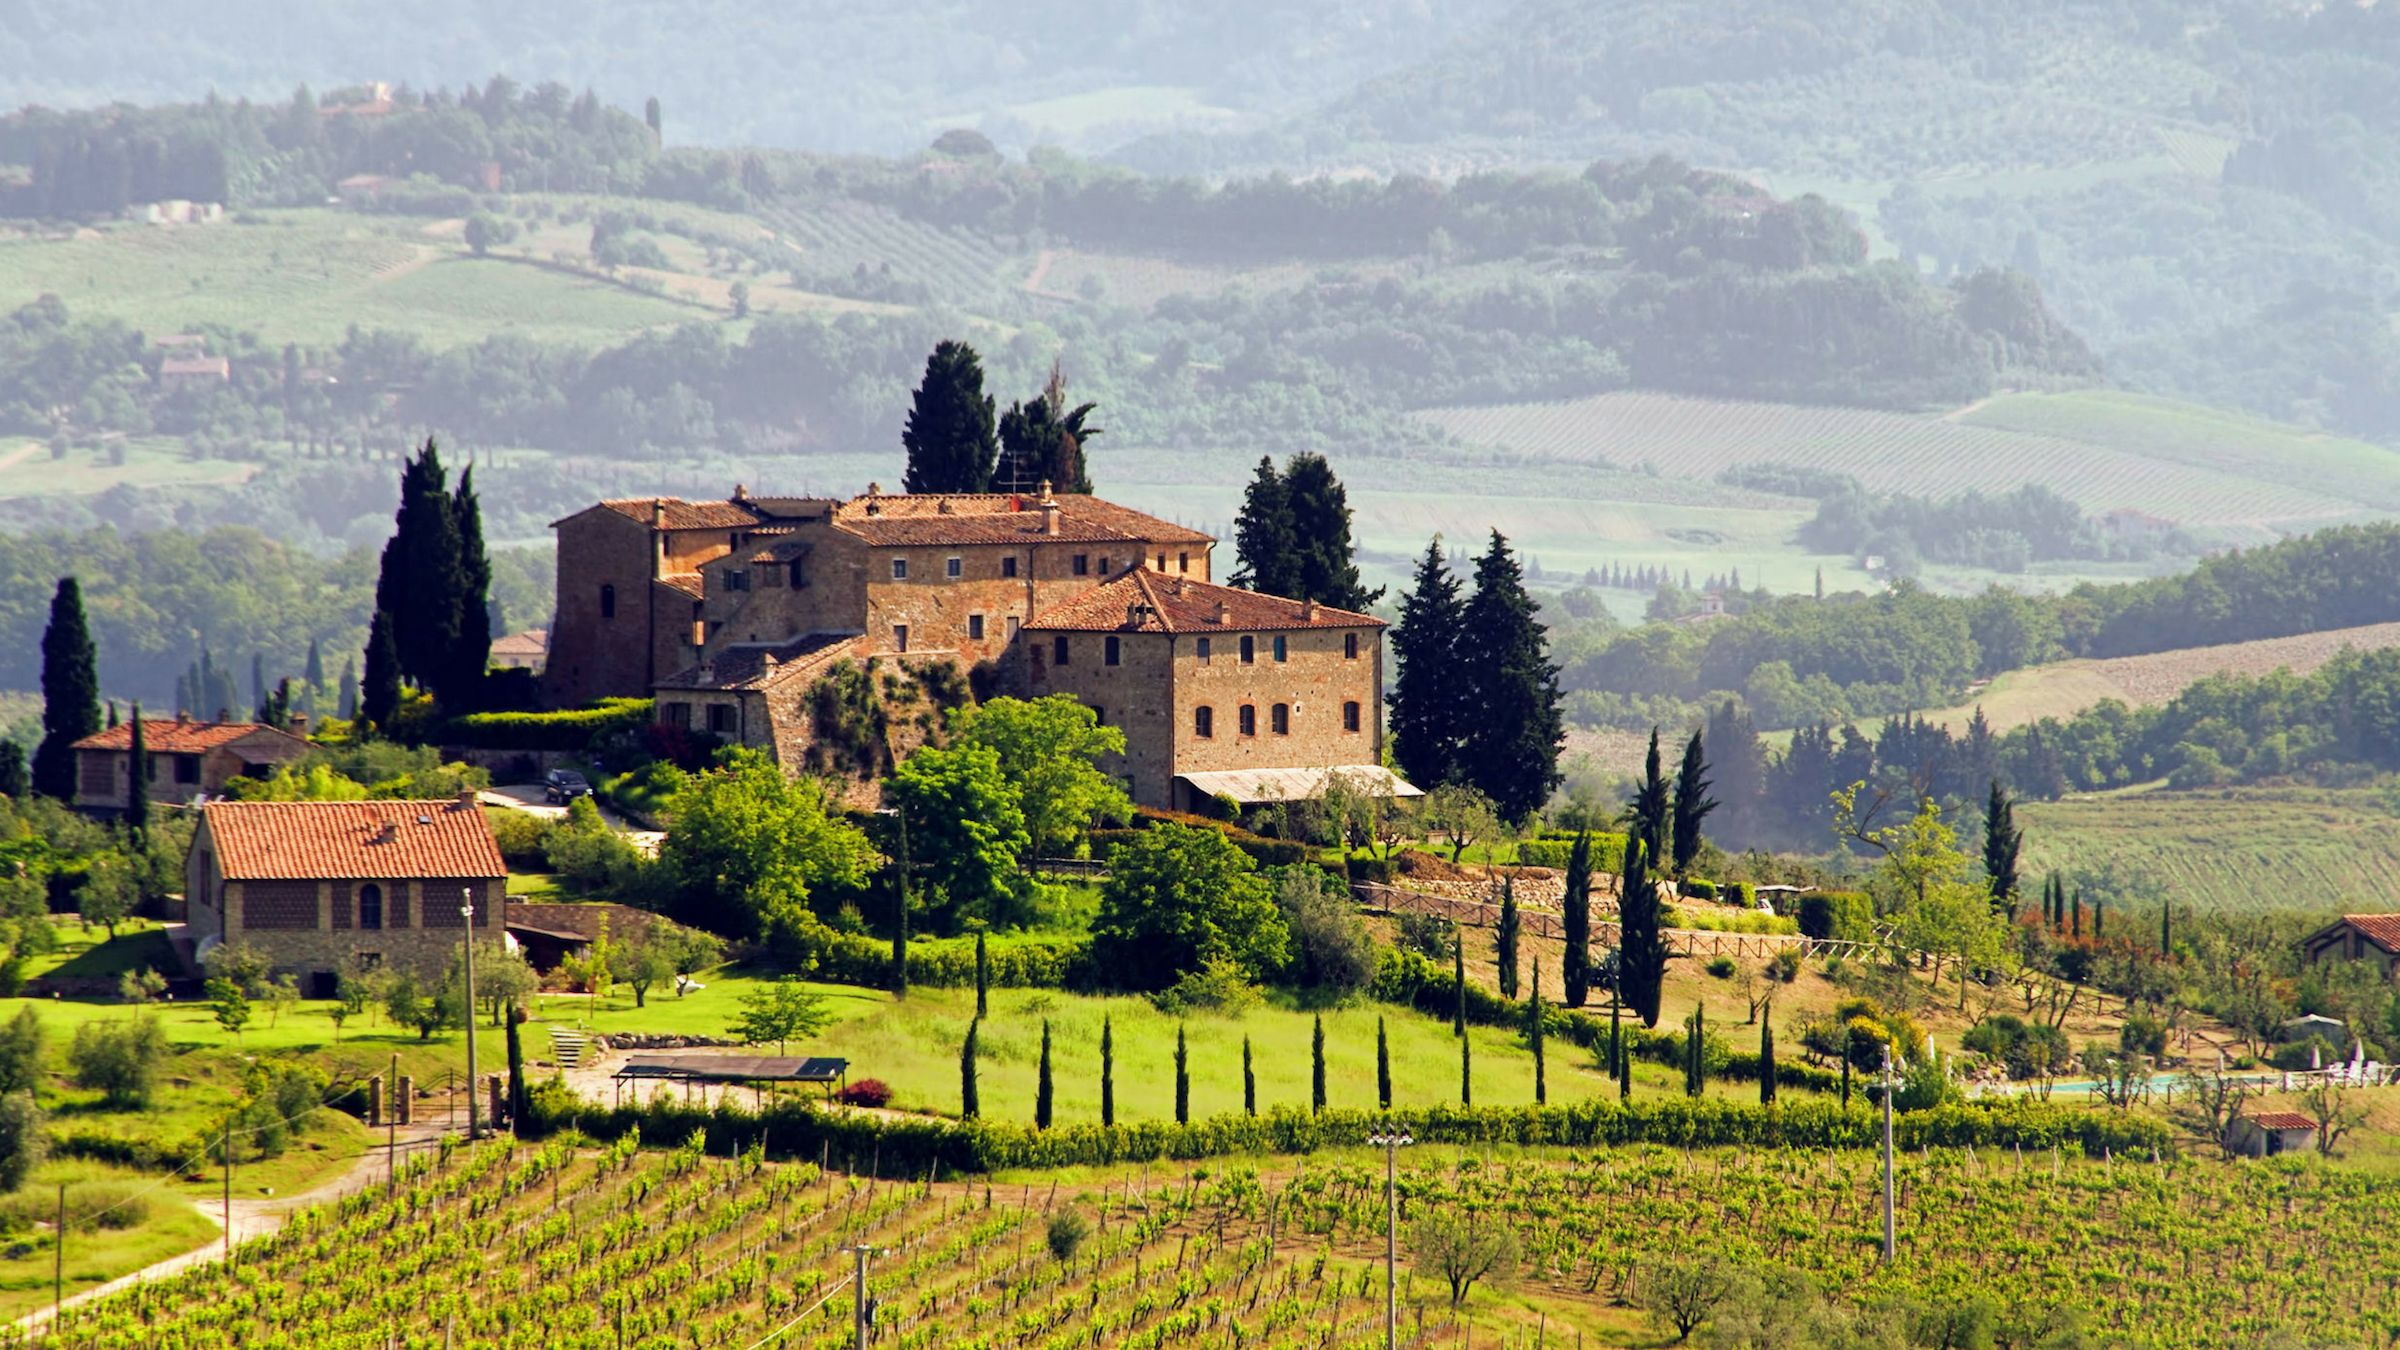 Tuscany Taster Tour: Round-trip from Rome with Lunch & Wine